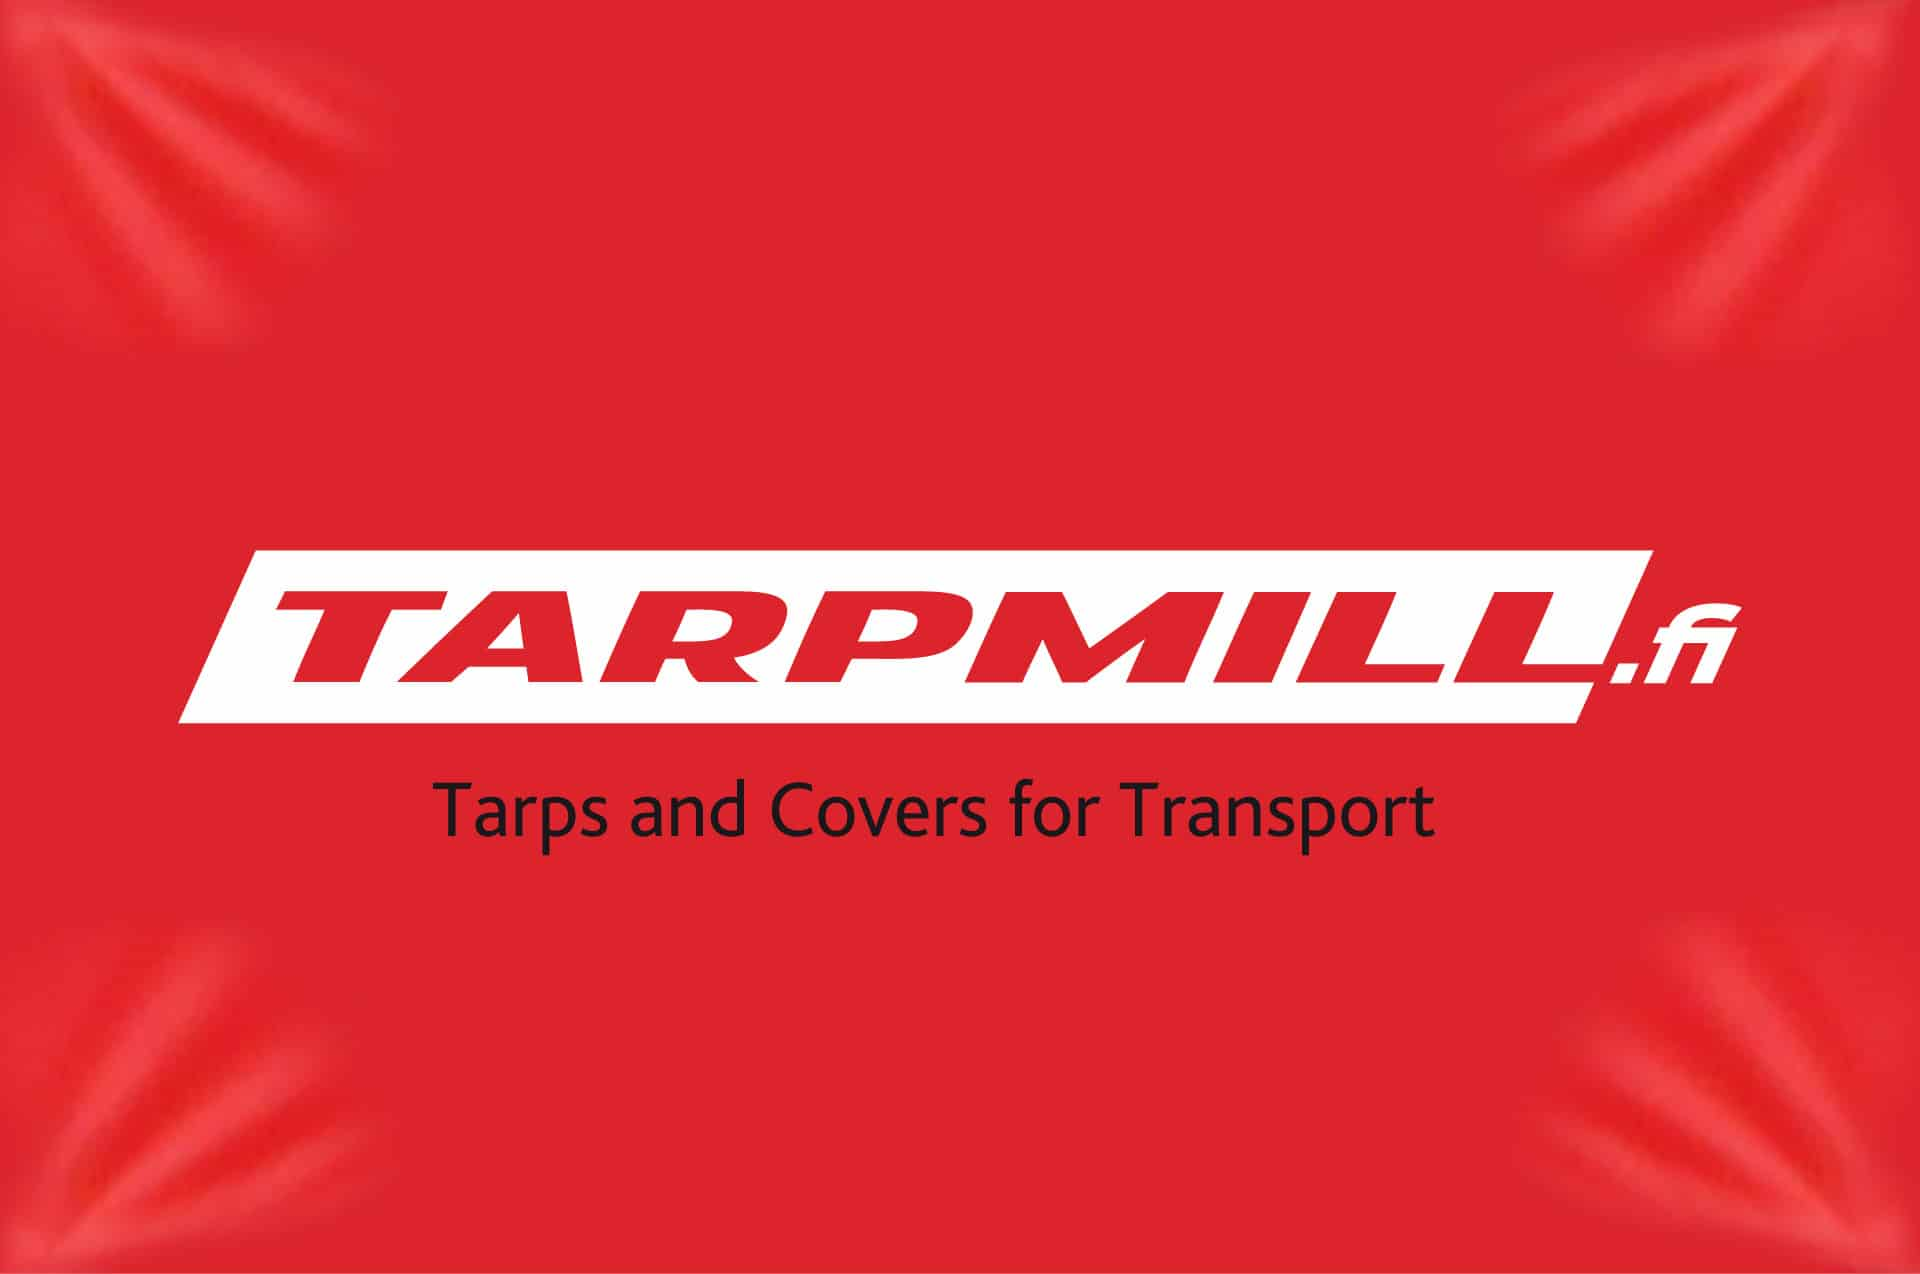 brand design for producer of tarps and cargo covers